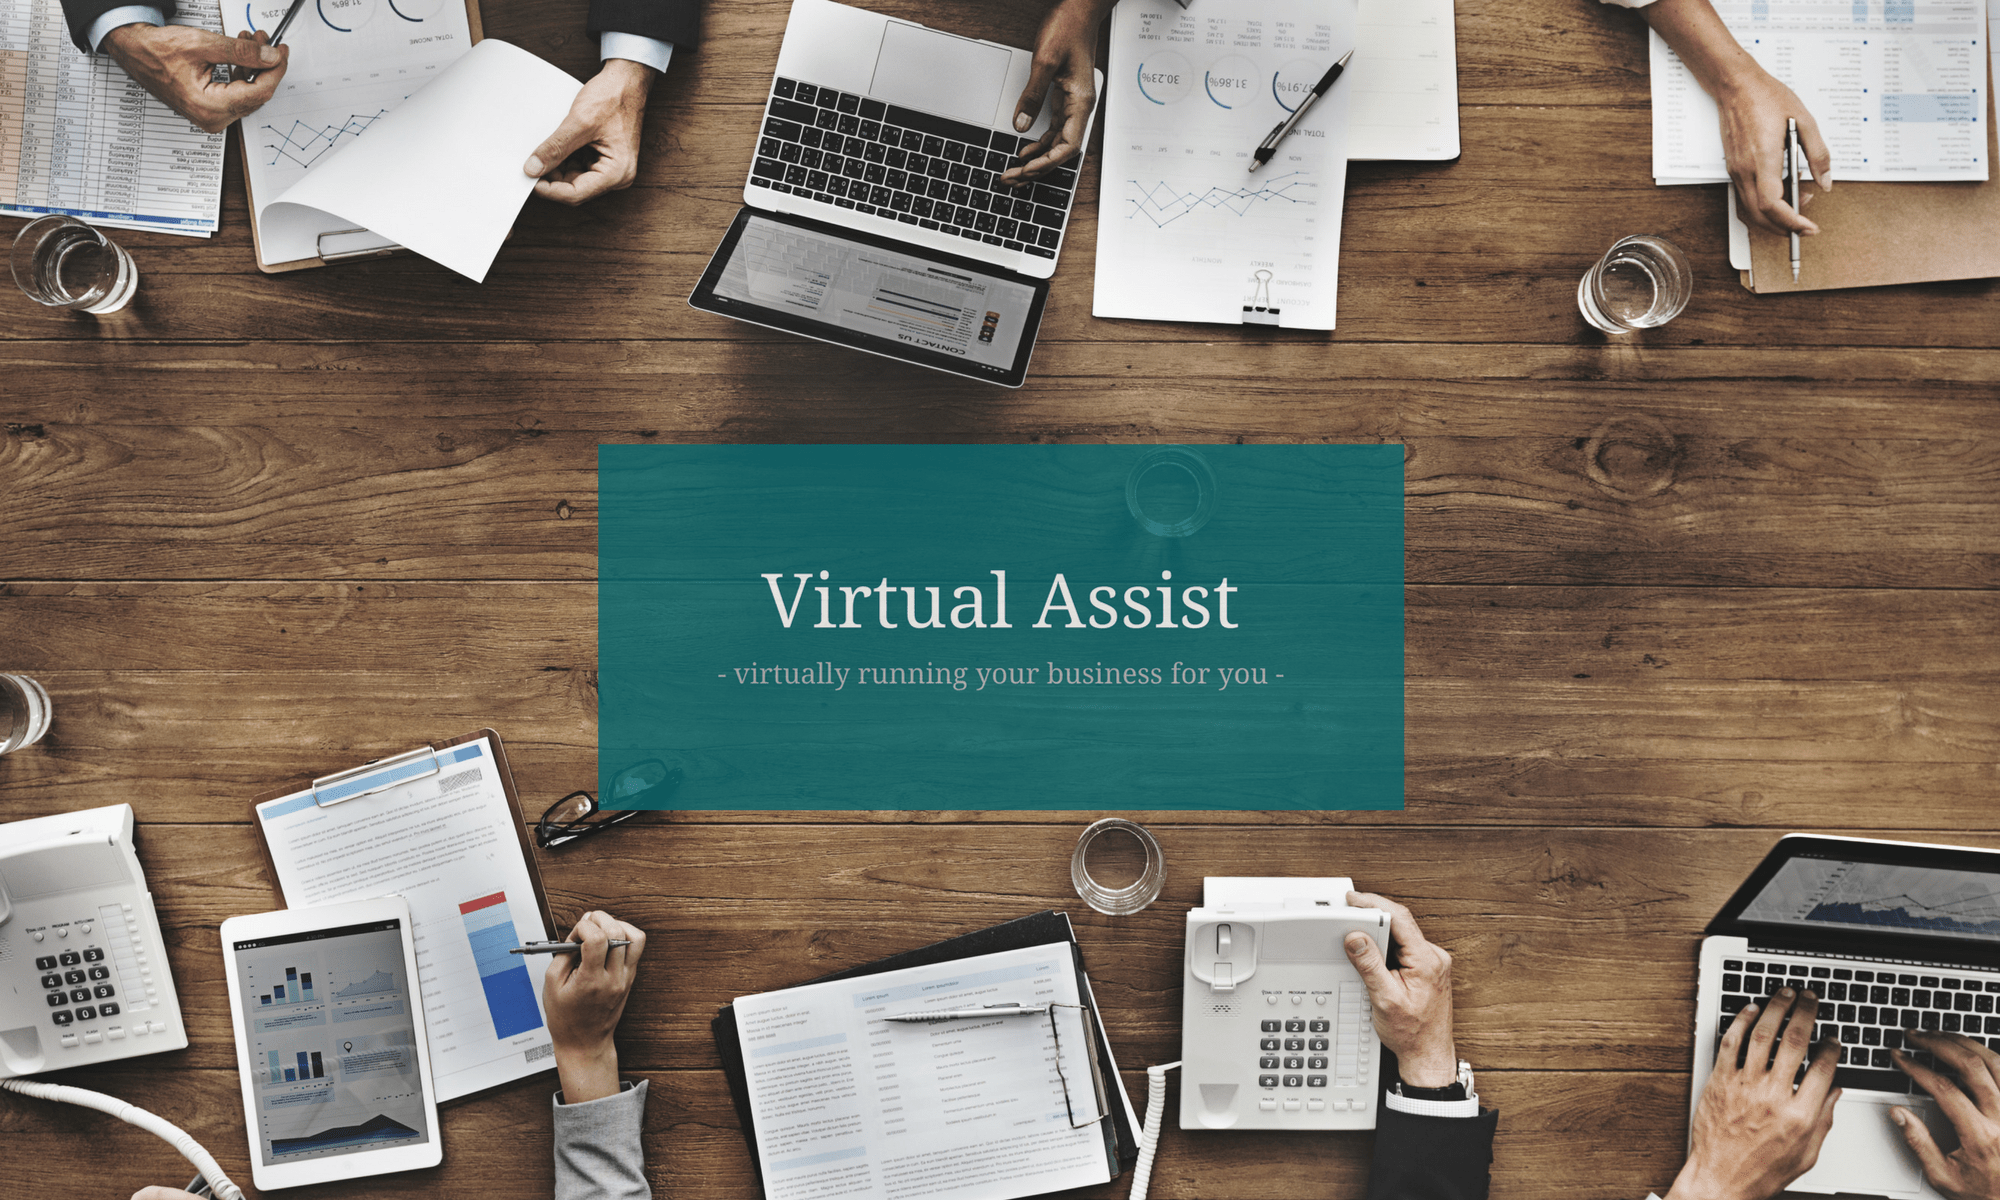 Virtual Assist